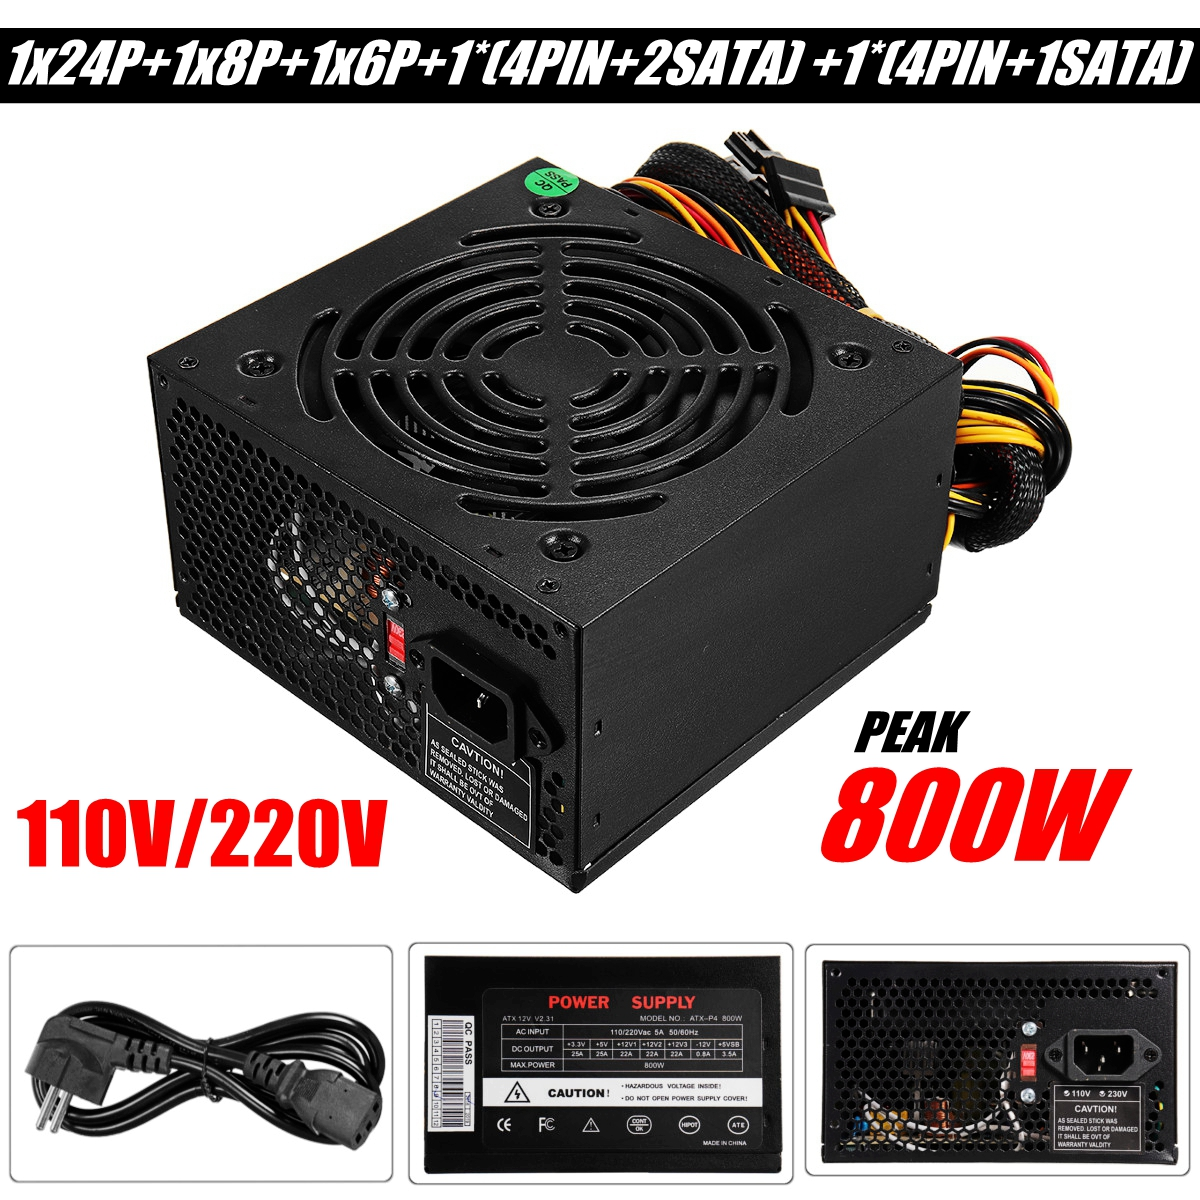 Black Max 800W Power Supply PSU PFC Silent Fan ATX 24-PIN PC Computer SATA Gaming PC Power Supply For Intel AMD Computer silver max 500w psu pfc atx 12v 24pin sata gaming pc power supply for intel amd computer power supply for btc